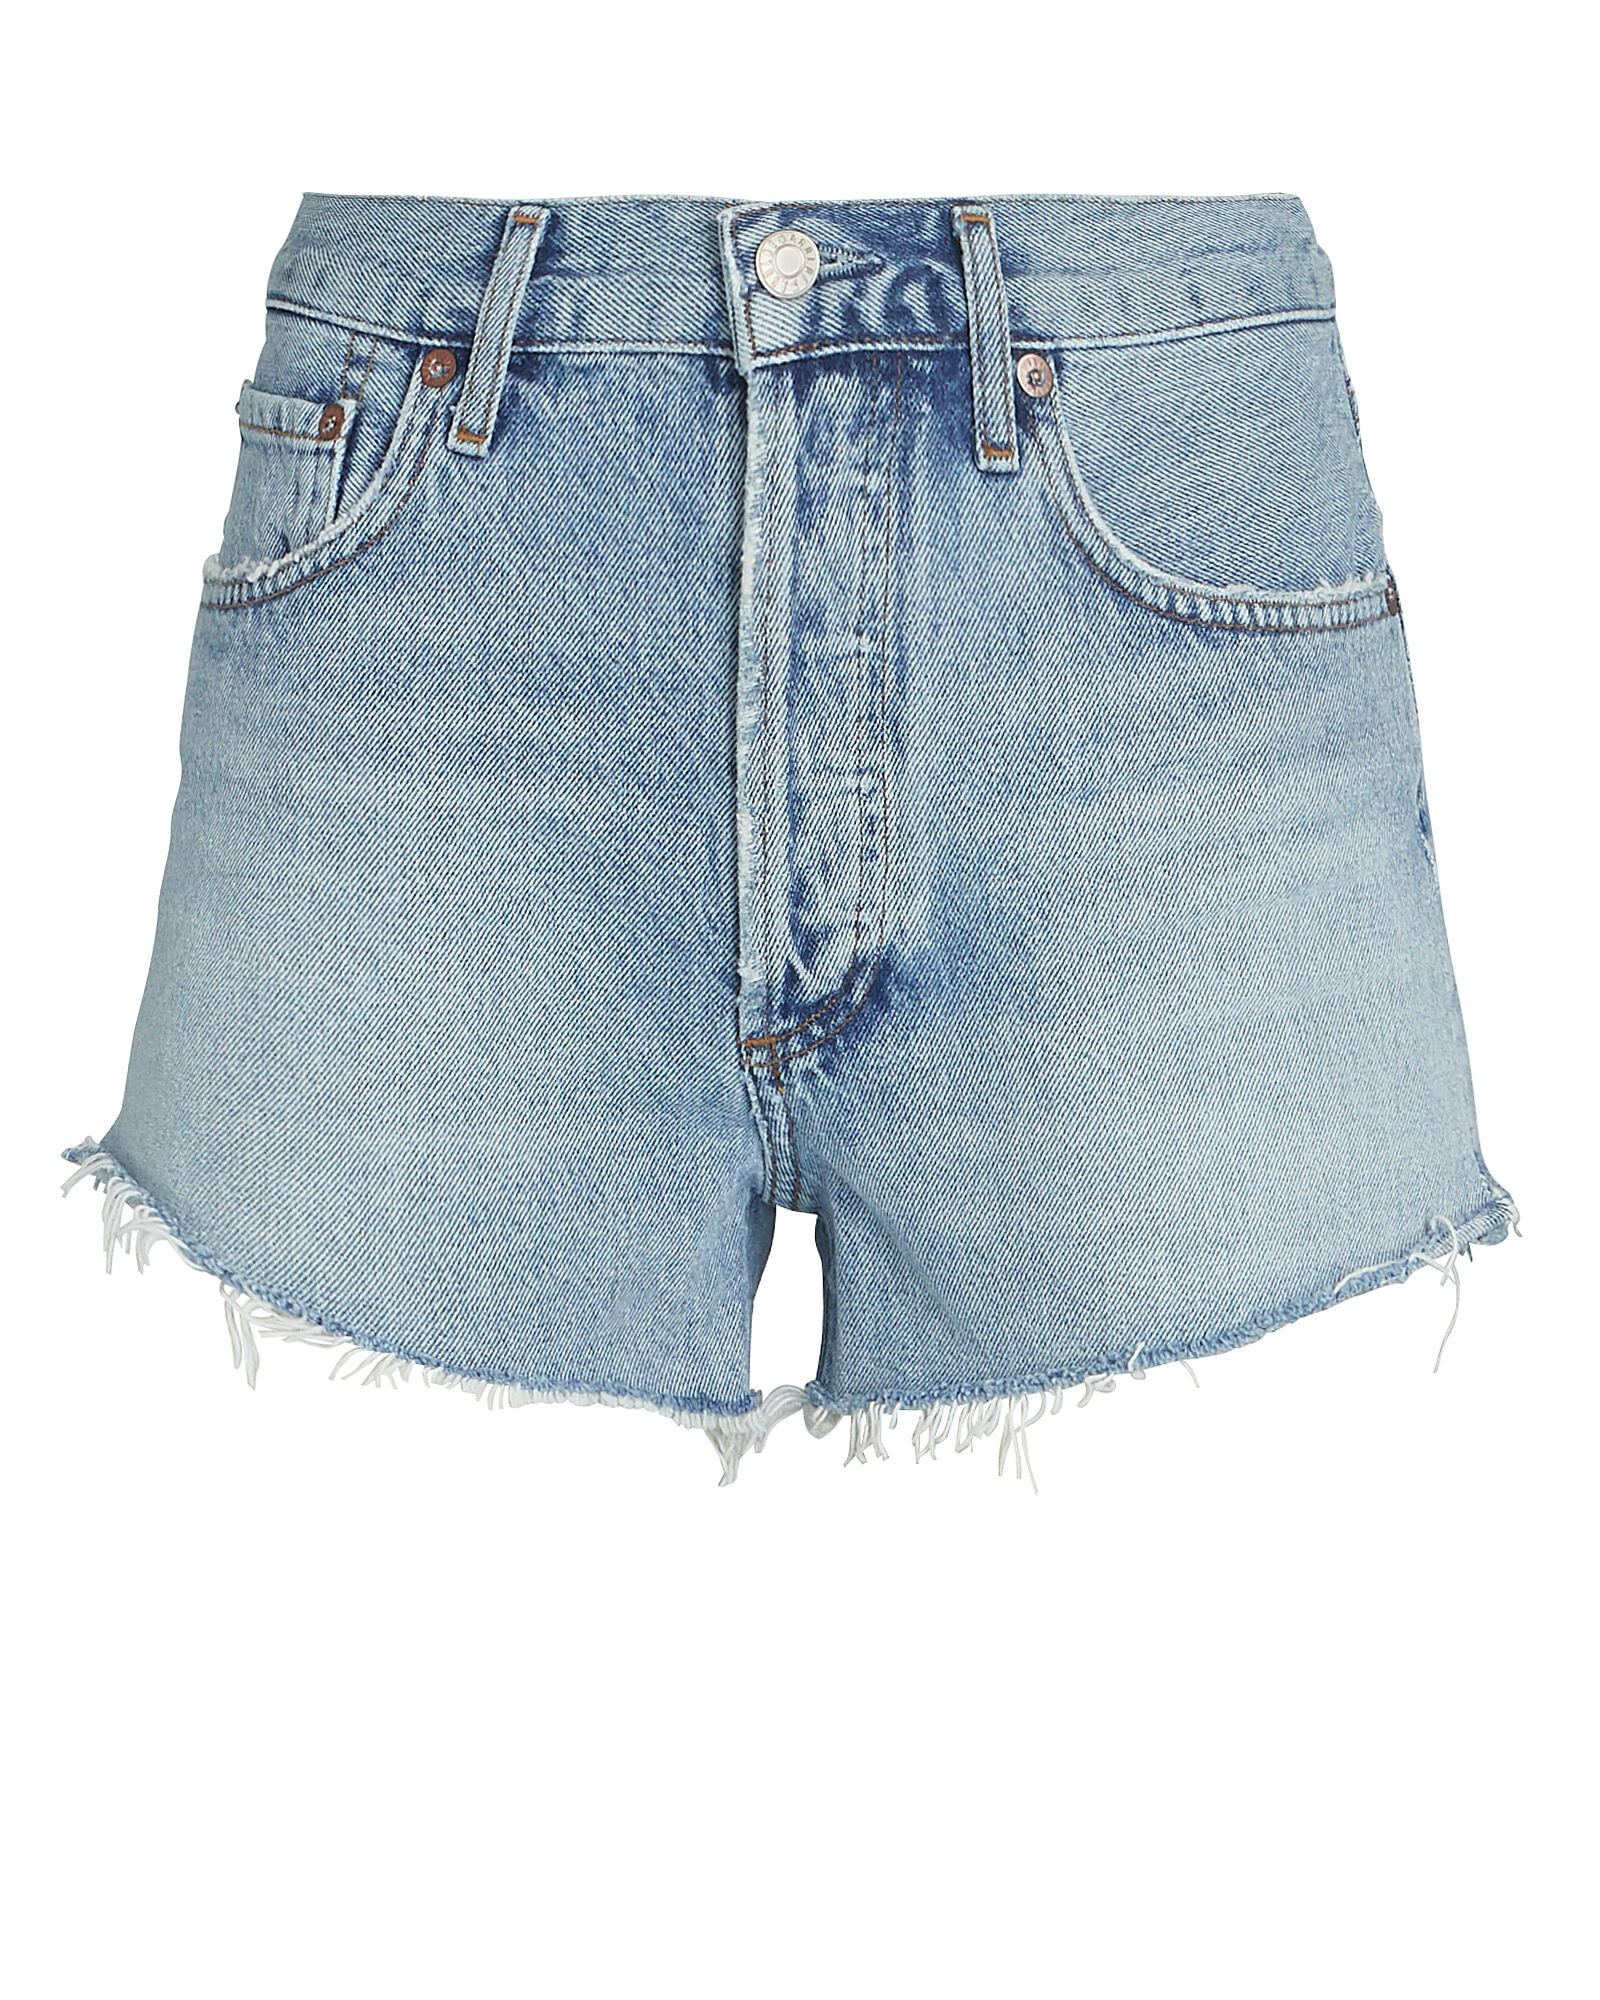 Parker Cut-Off Denim Shorts, RIPTIDE, hi-res